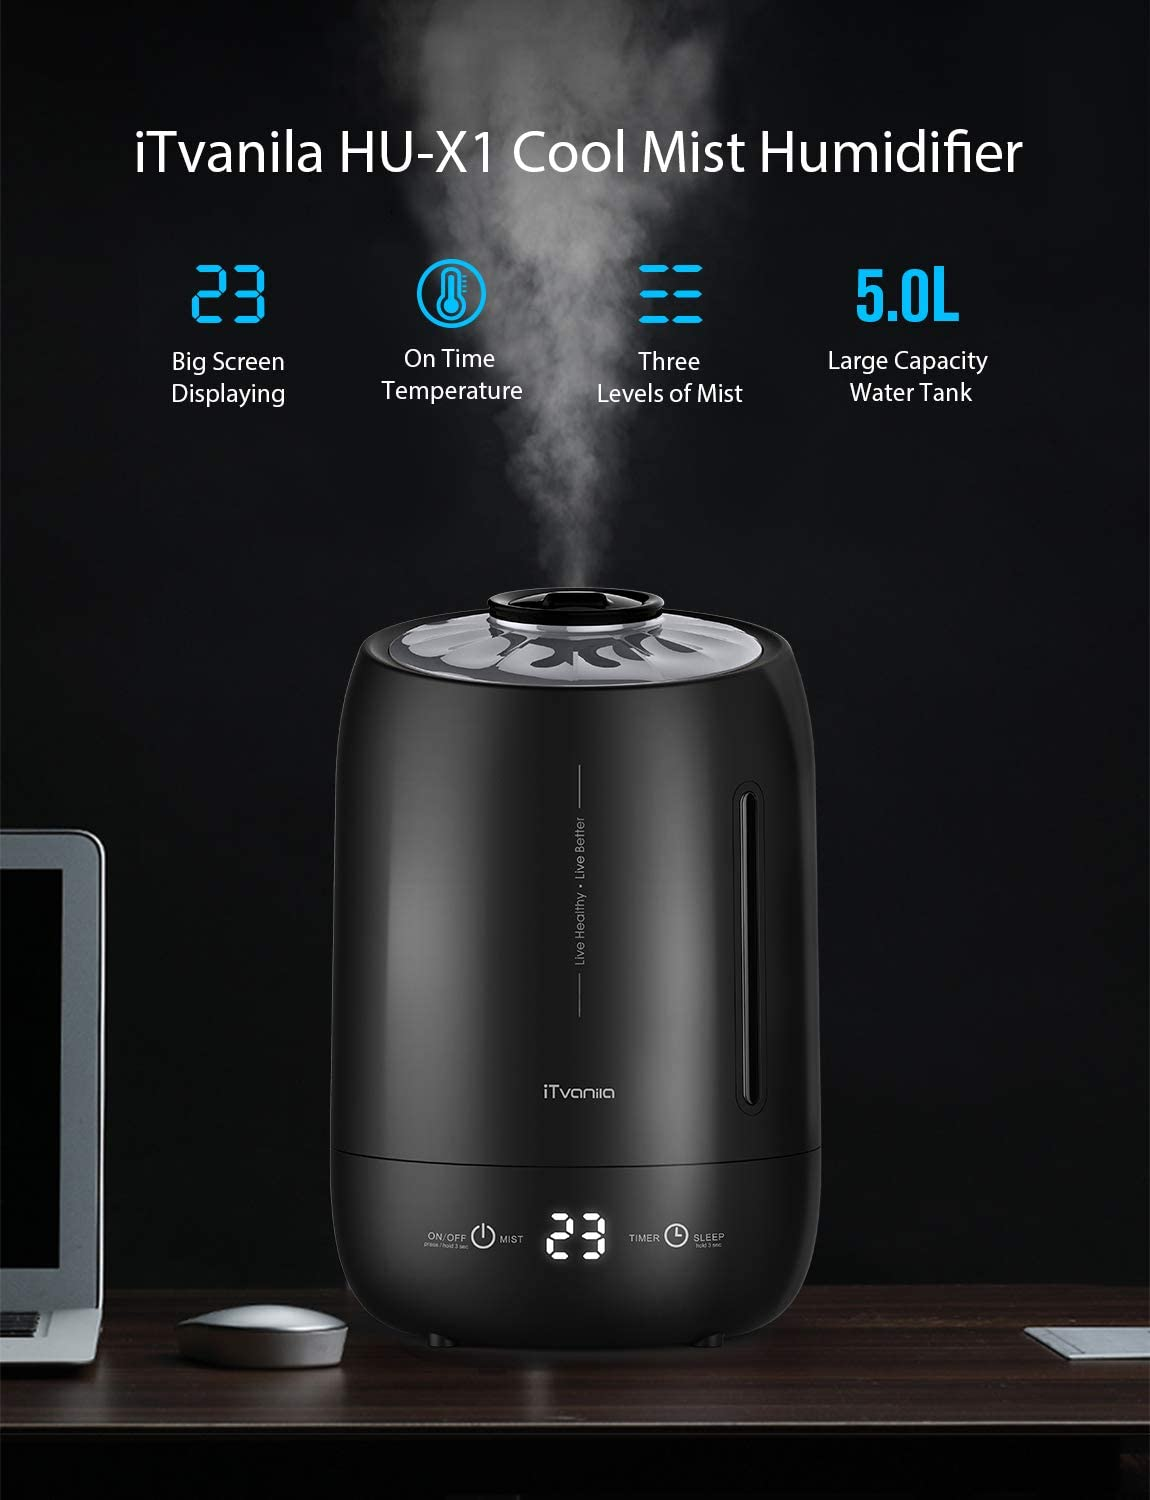 iTvanila Cool Mist Humidifier, 5L Air Humidifiers for Bedroom Living Room Office,Auto Shut off Whisper Quite Air Humidifiers,last more than 40 hours